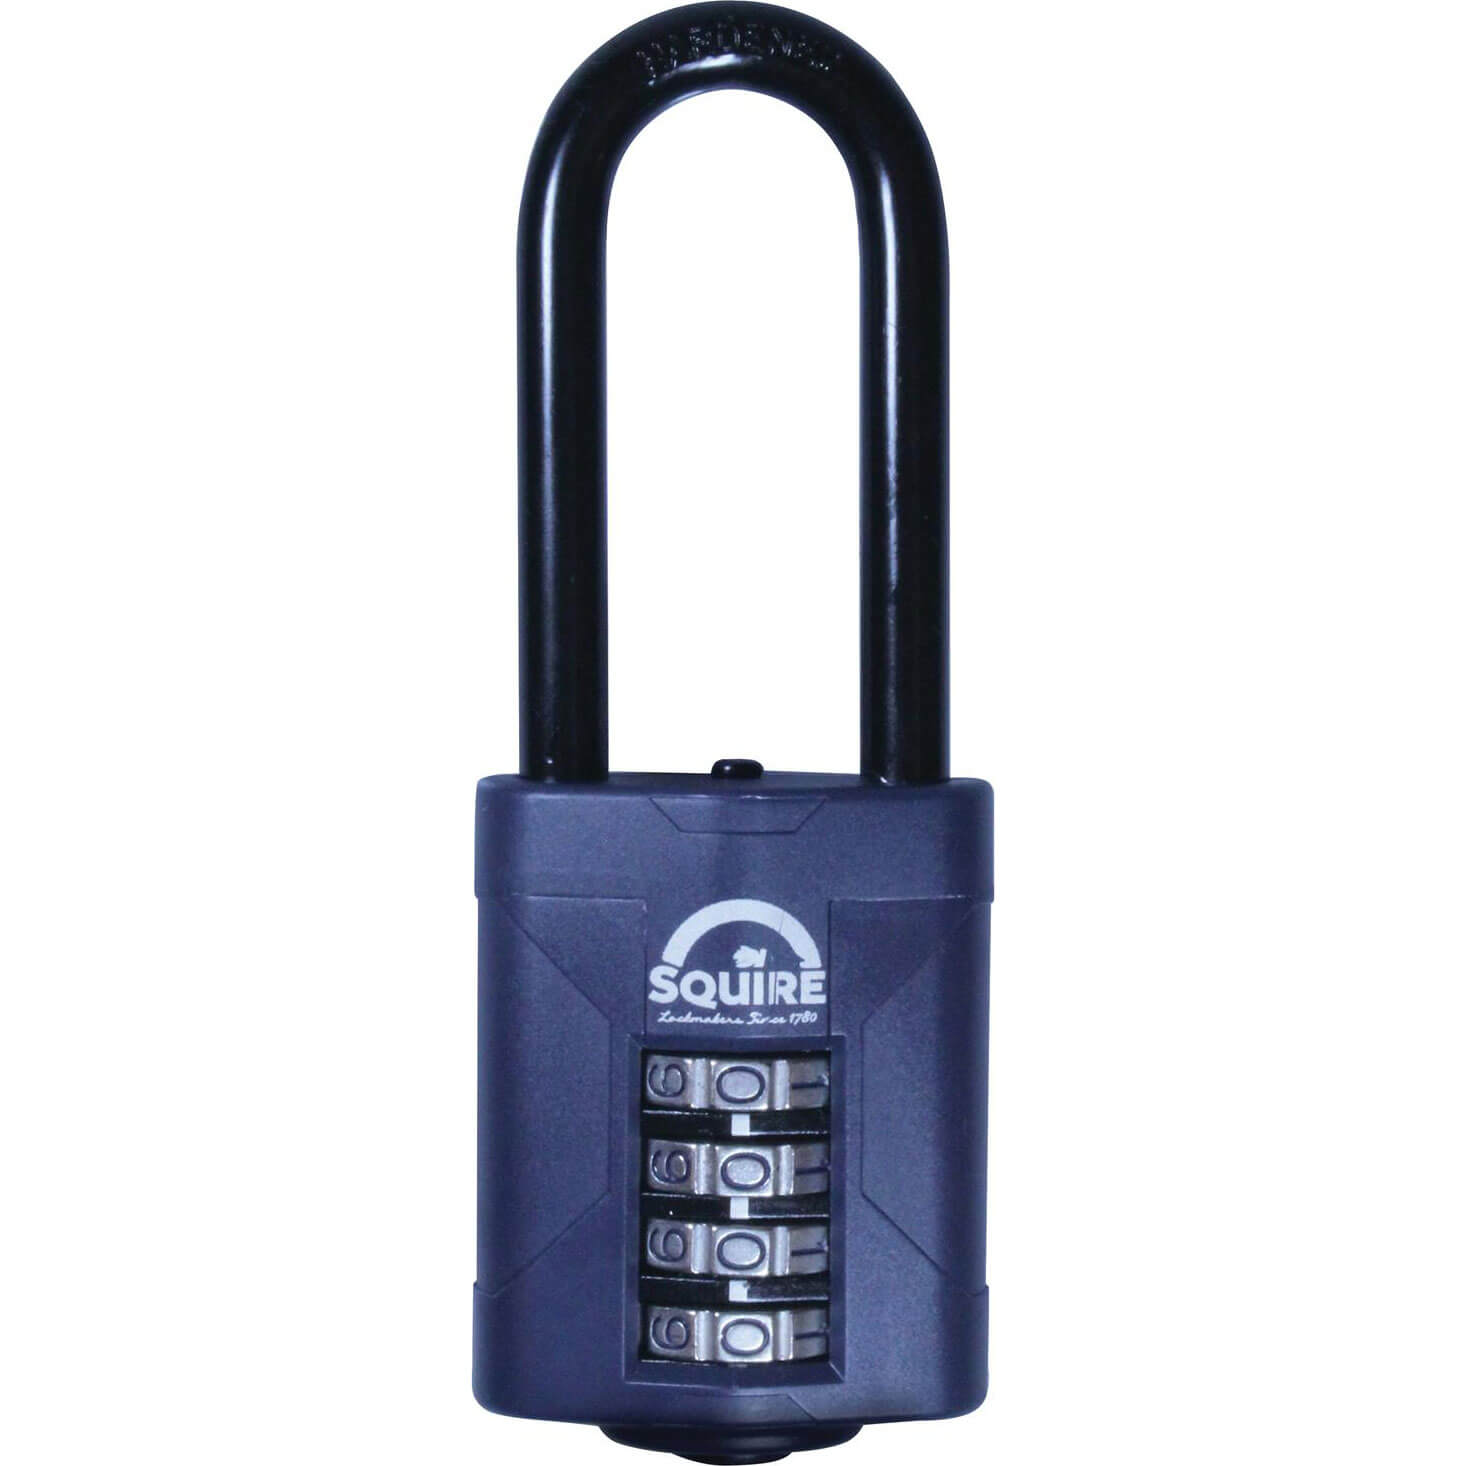 Image of Henry Squire Push Button Combination Padlock 50mm Extra Long